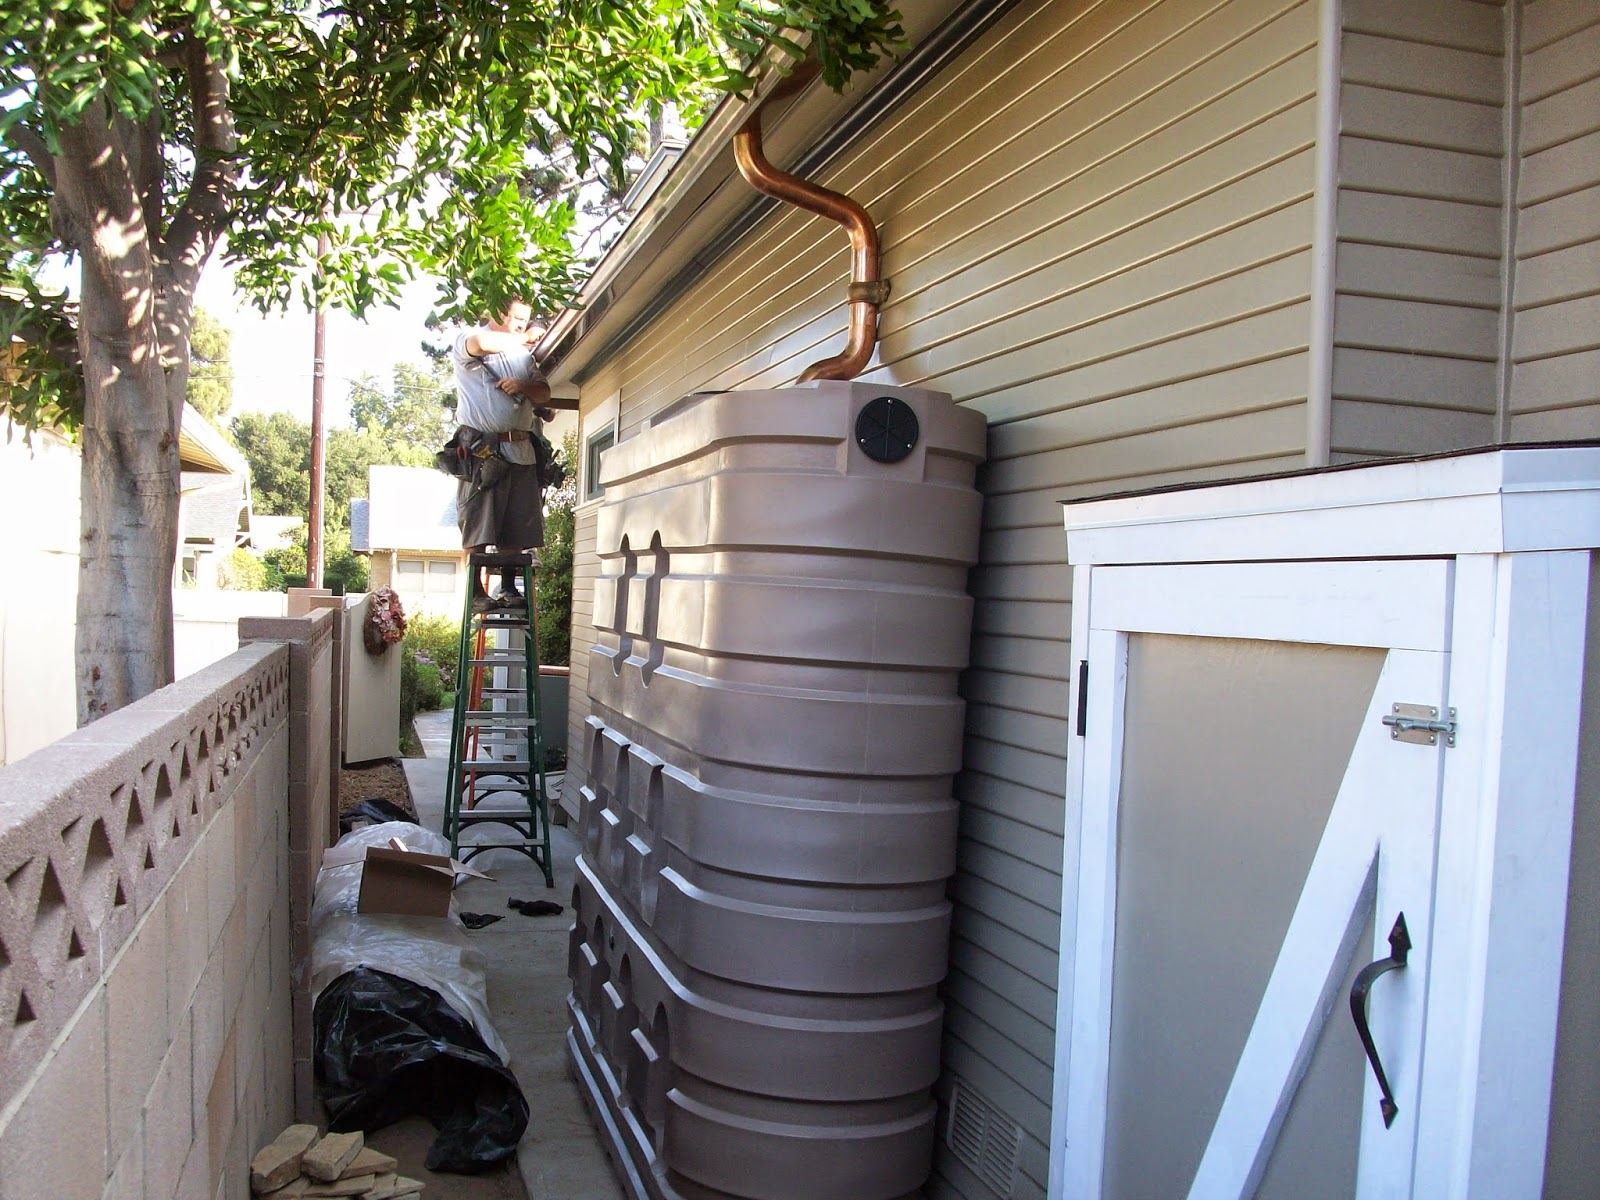 Rain Water Systems Rain Water Harvesting How Not To Do